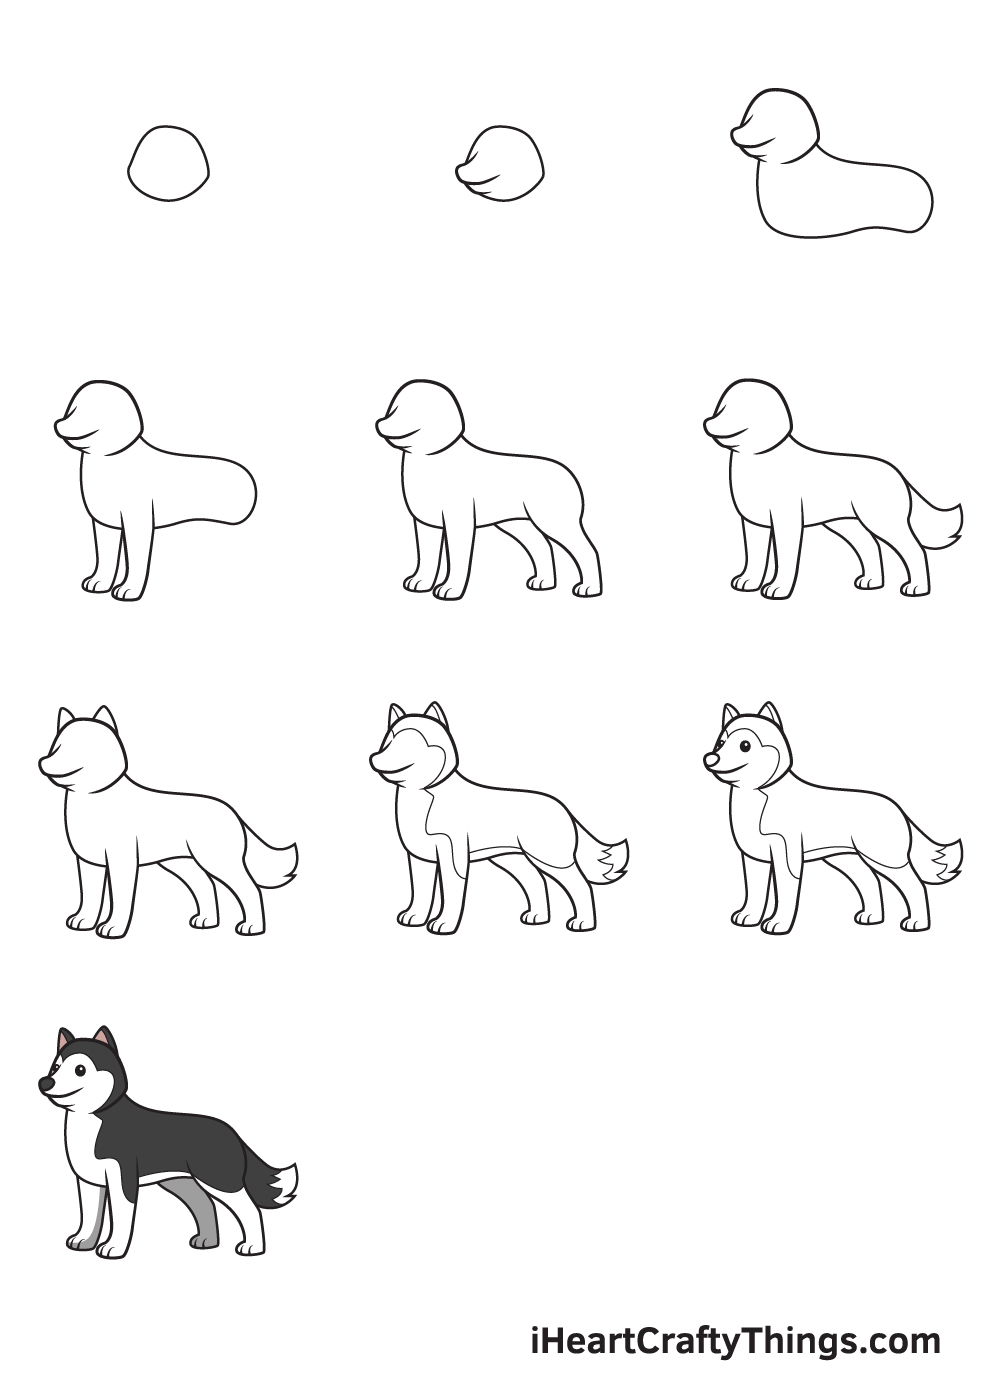 drawing husky in 9 steps